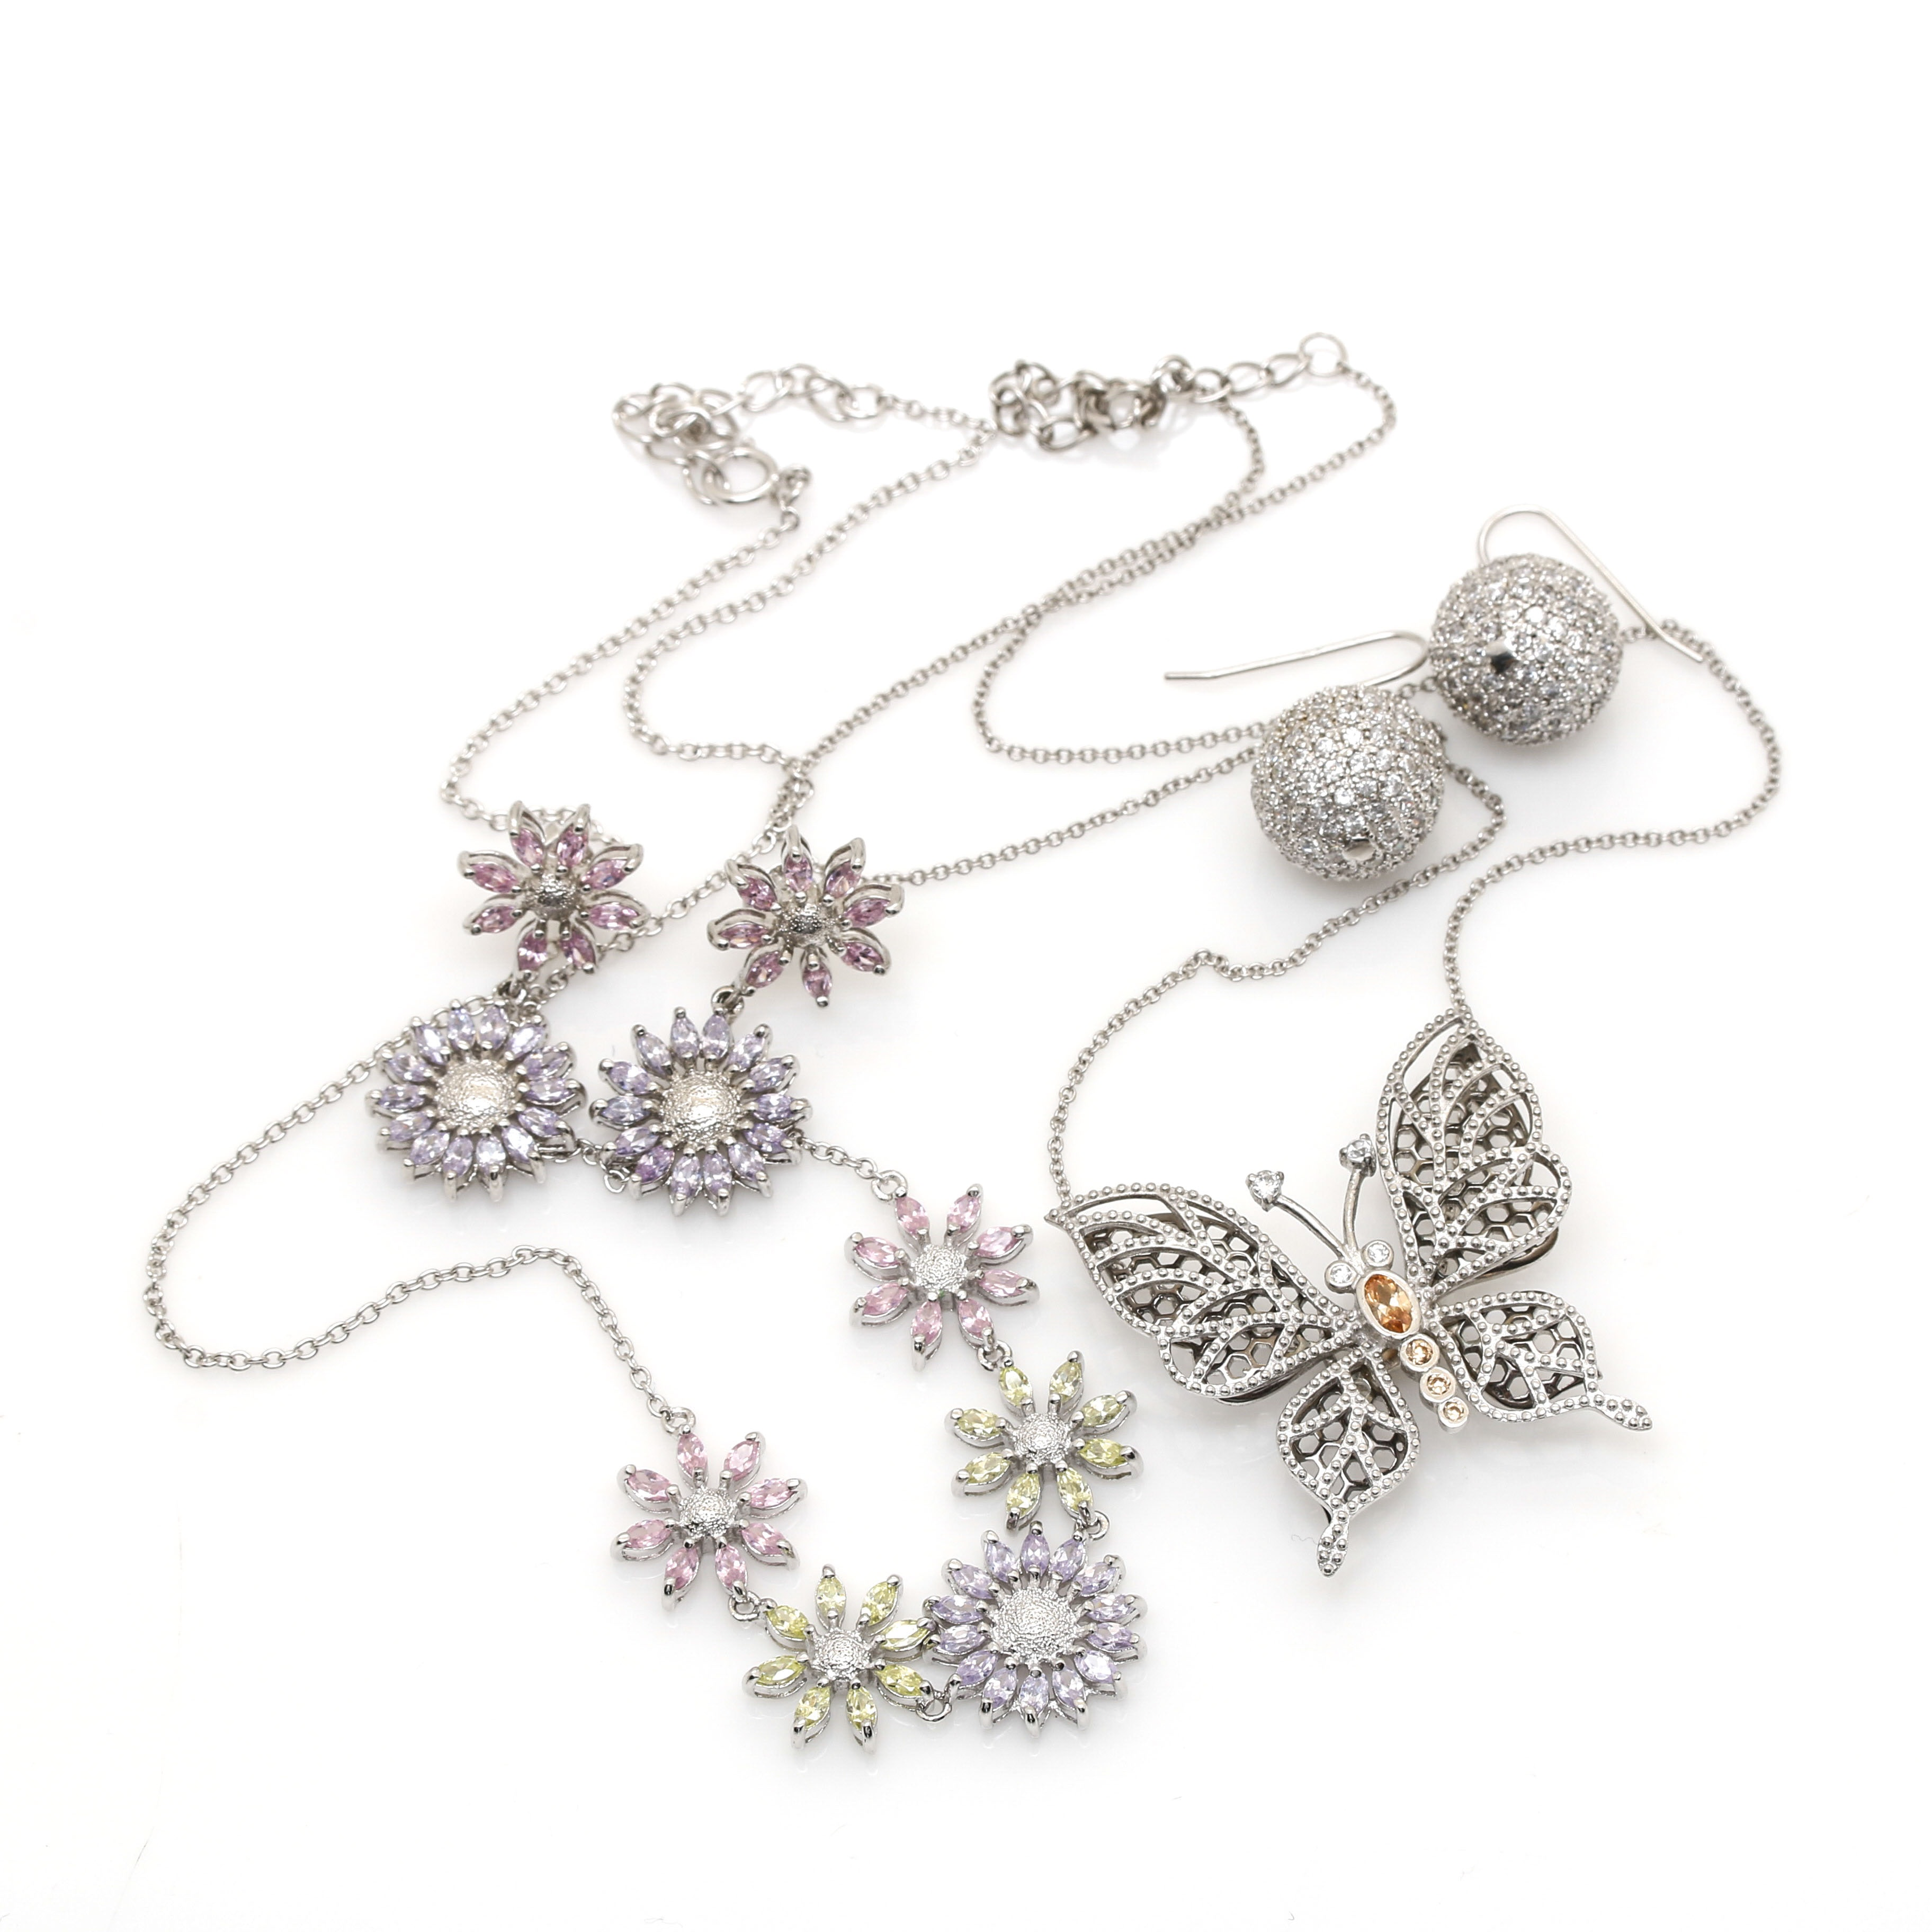 Selection of Sterling Silver and Cubic Zirconia Jewelry